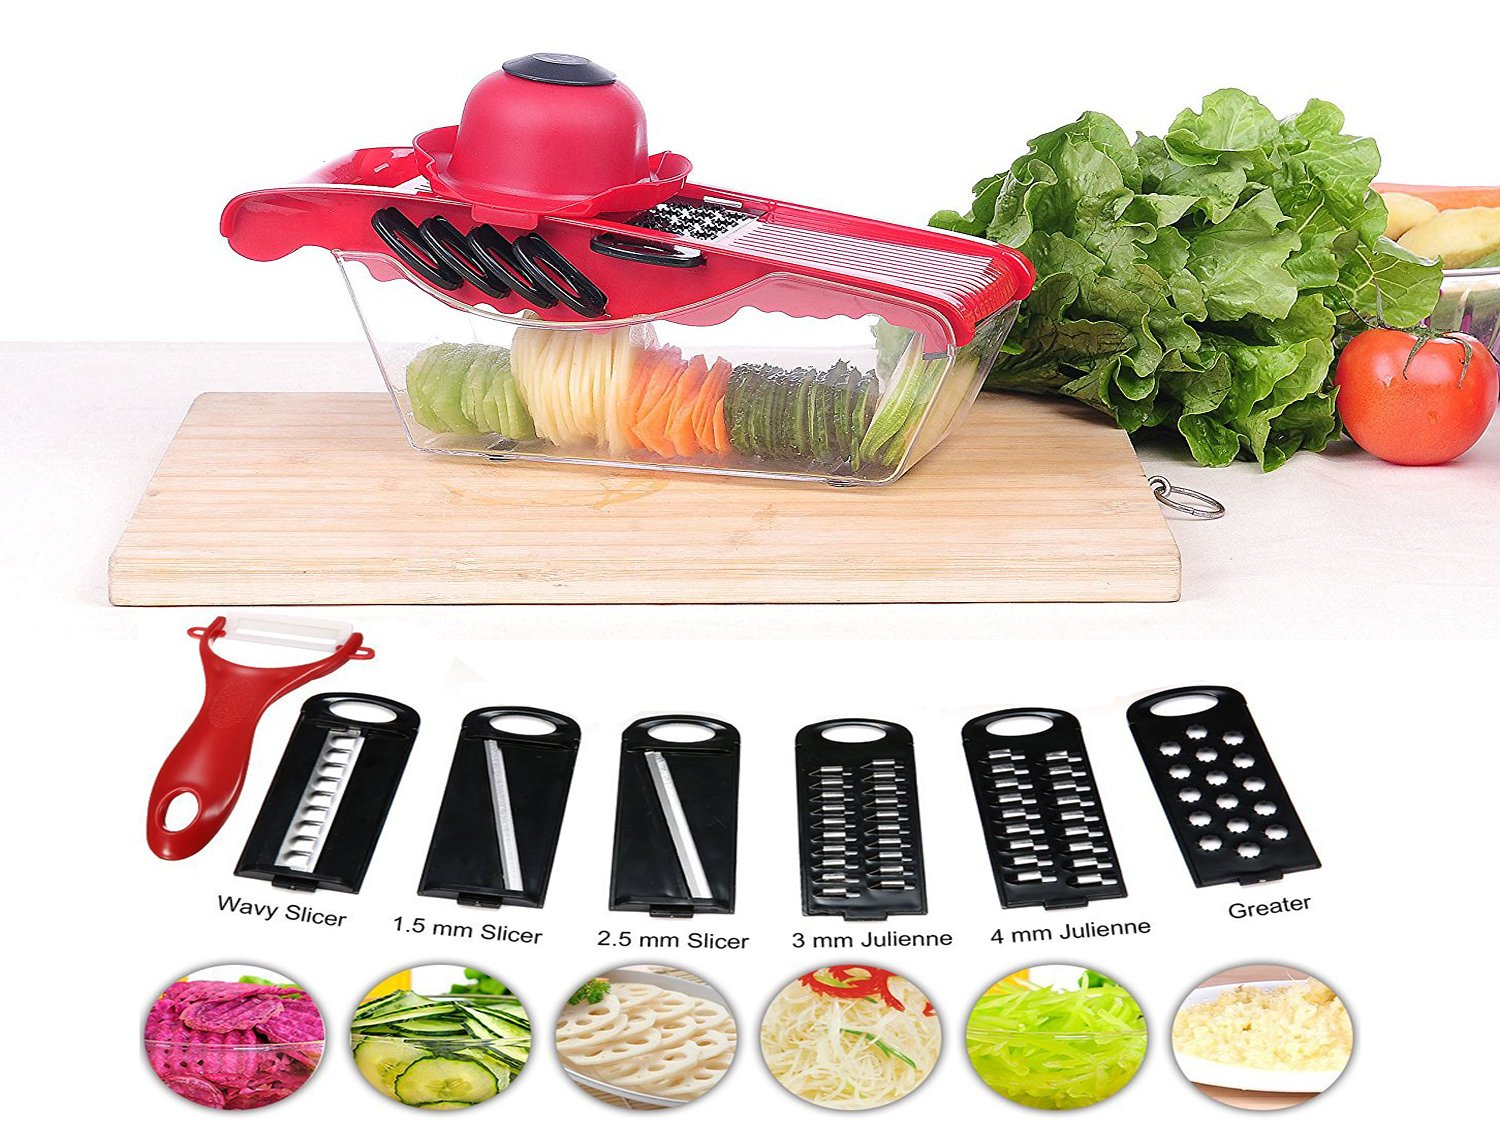 Spiralizer Vegetable Slicer Cutter-6 Interchangeable Blades with Peeler, Prevented slipping, Hand Protector,Storage Container - Cutter for Potato,carrots, Onion, Cucumber,Cheese etc